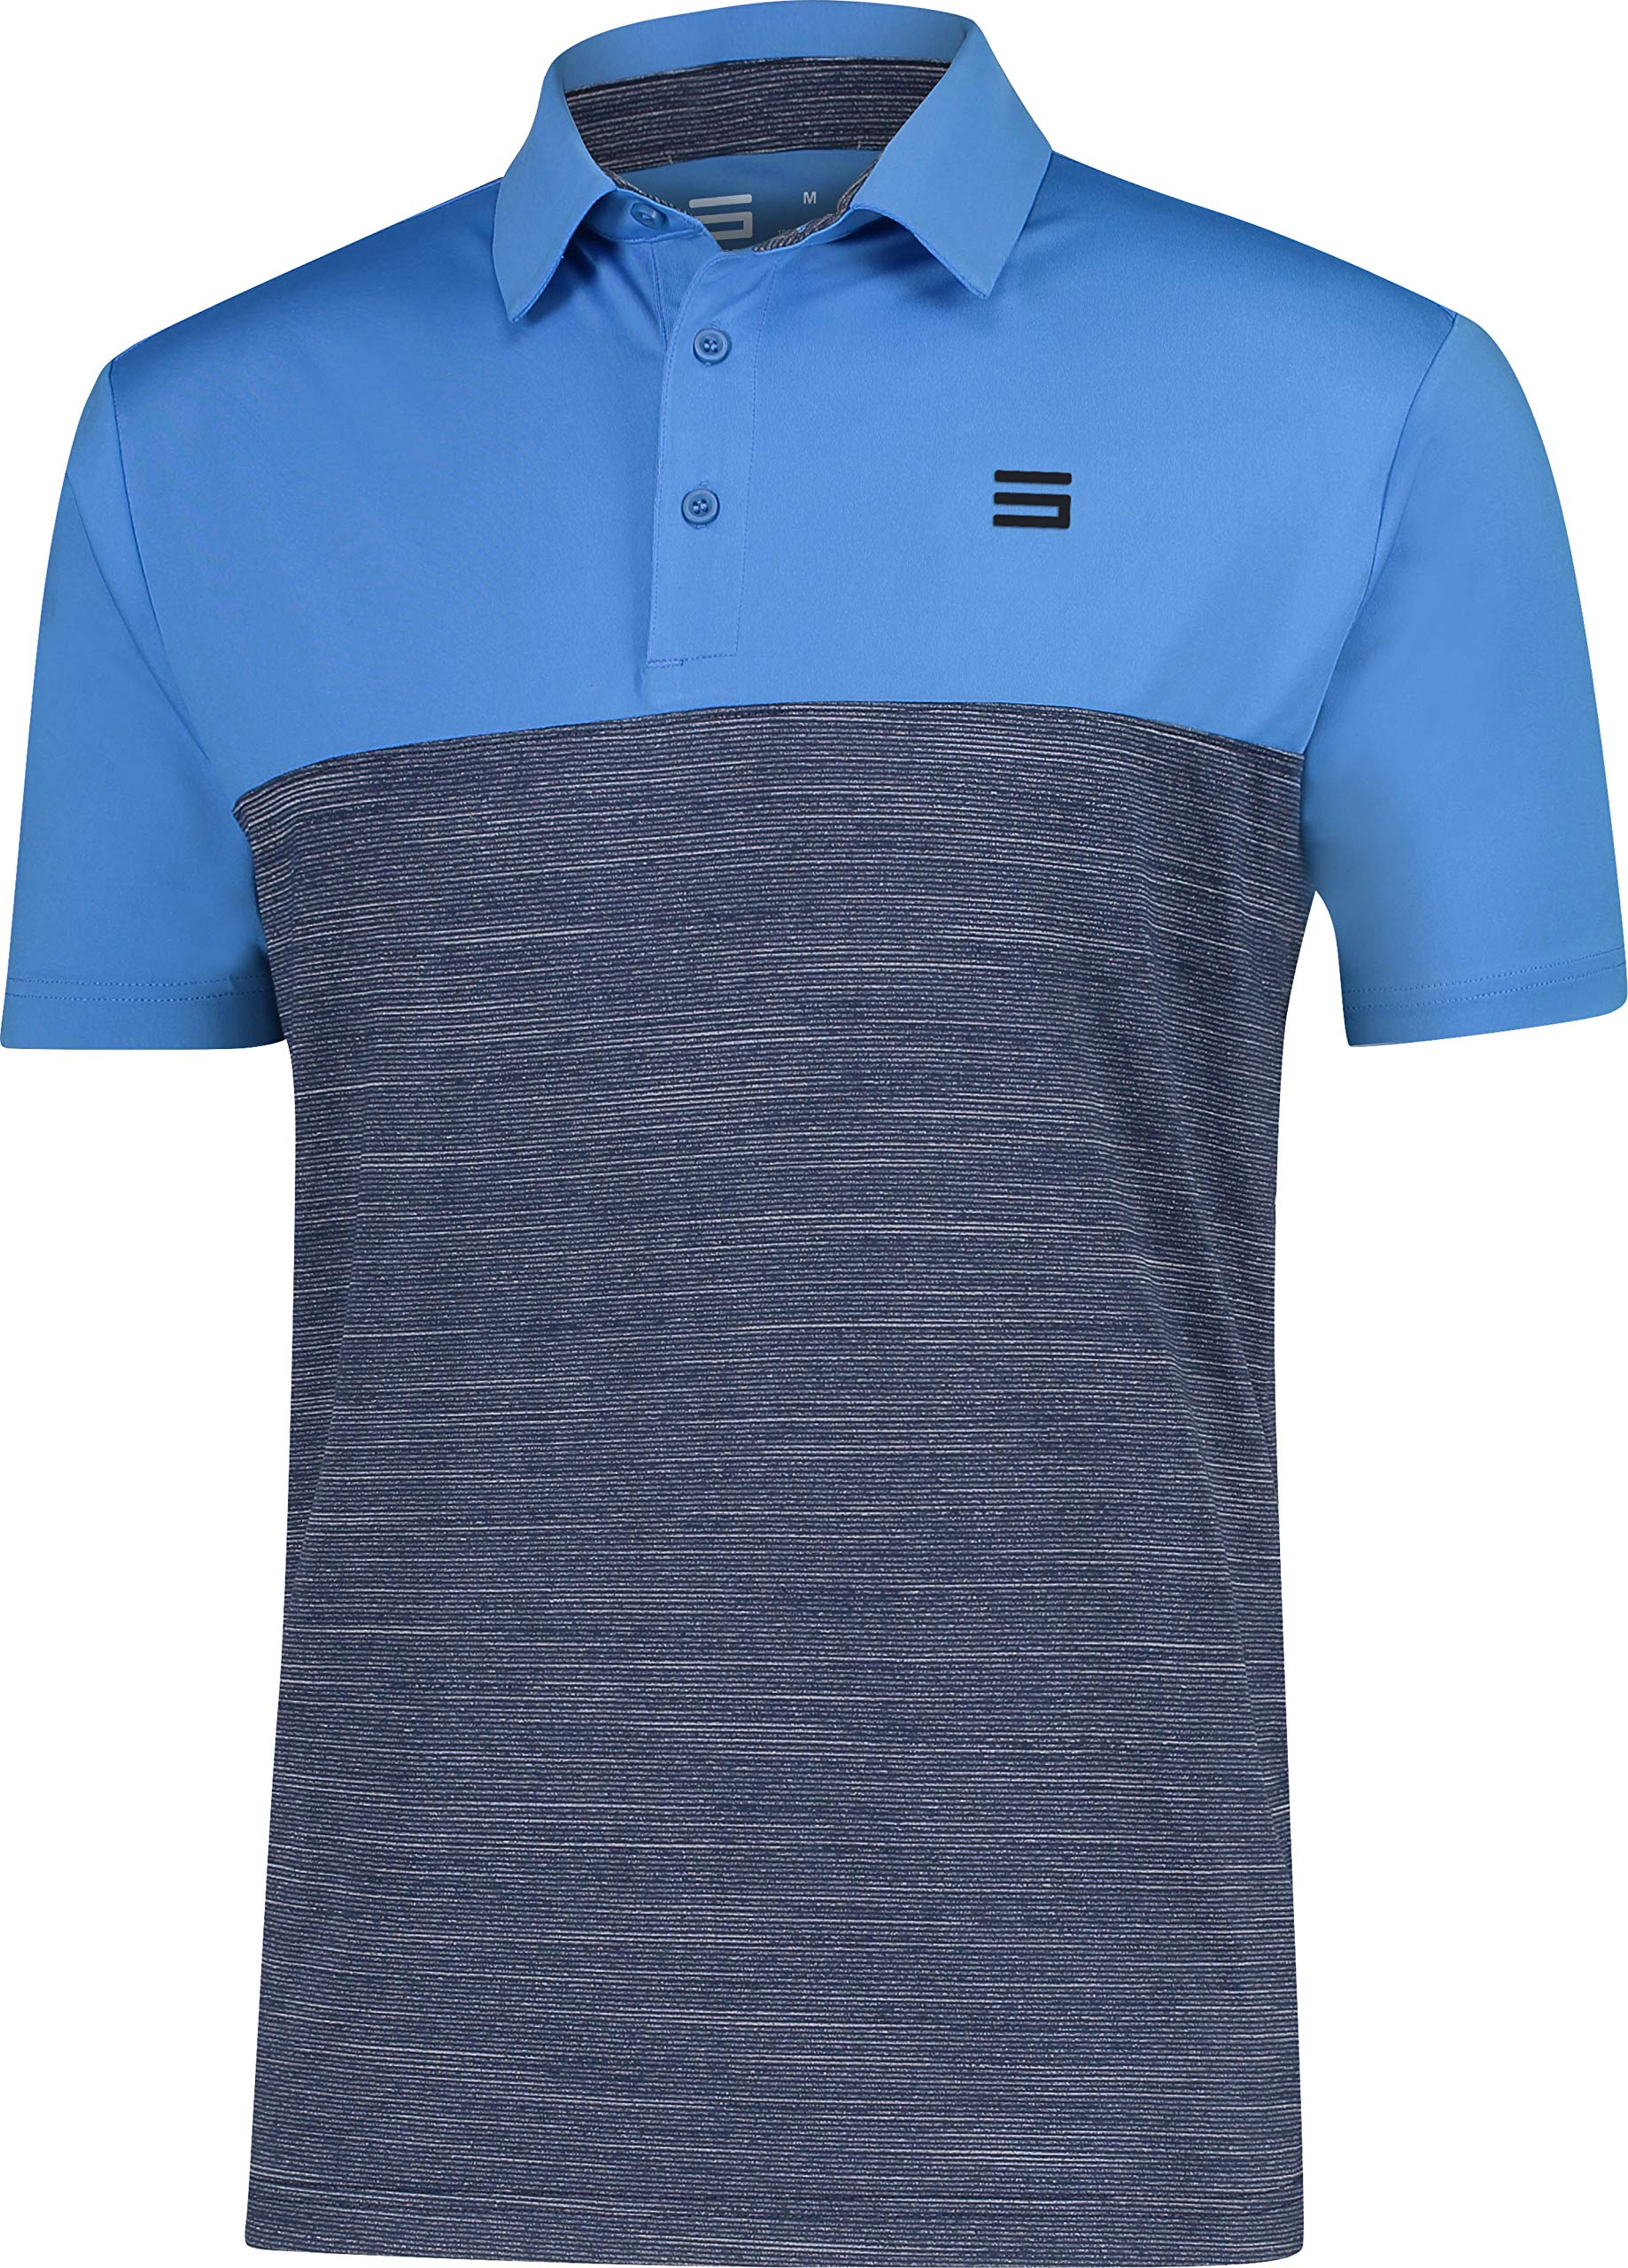 Three Sixty Six Dri-Fit Golf Shirts for Men - Moisture Wicking Short-Sleeve Polo Shirt by Three Sixty Six